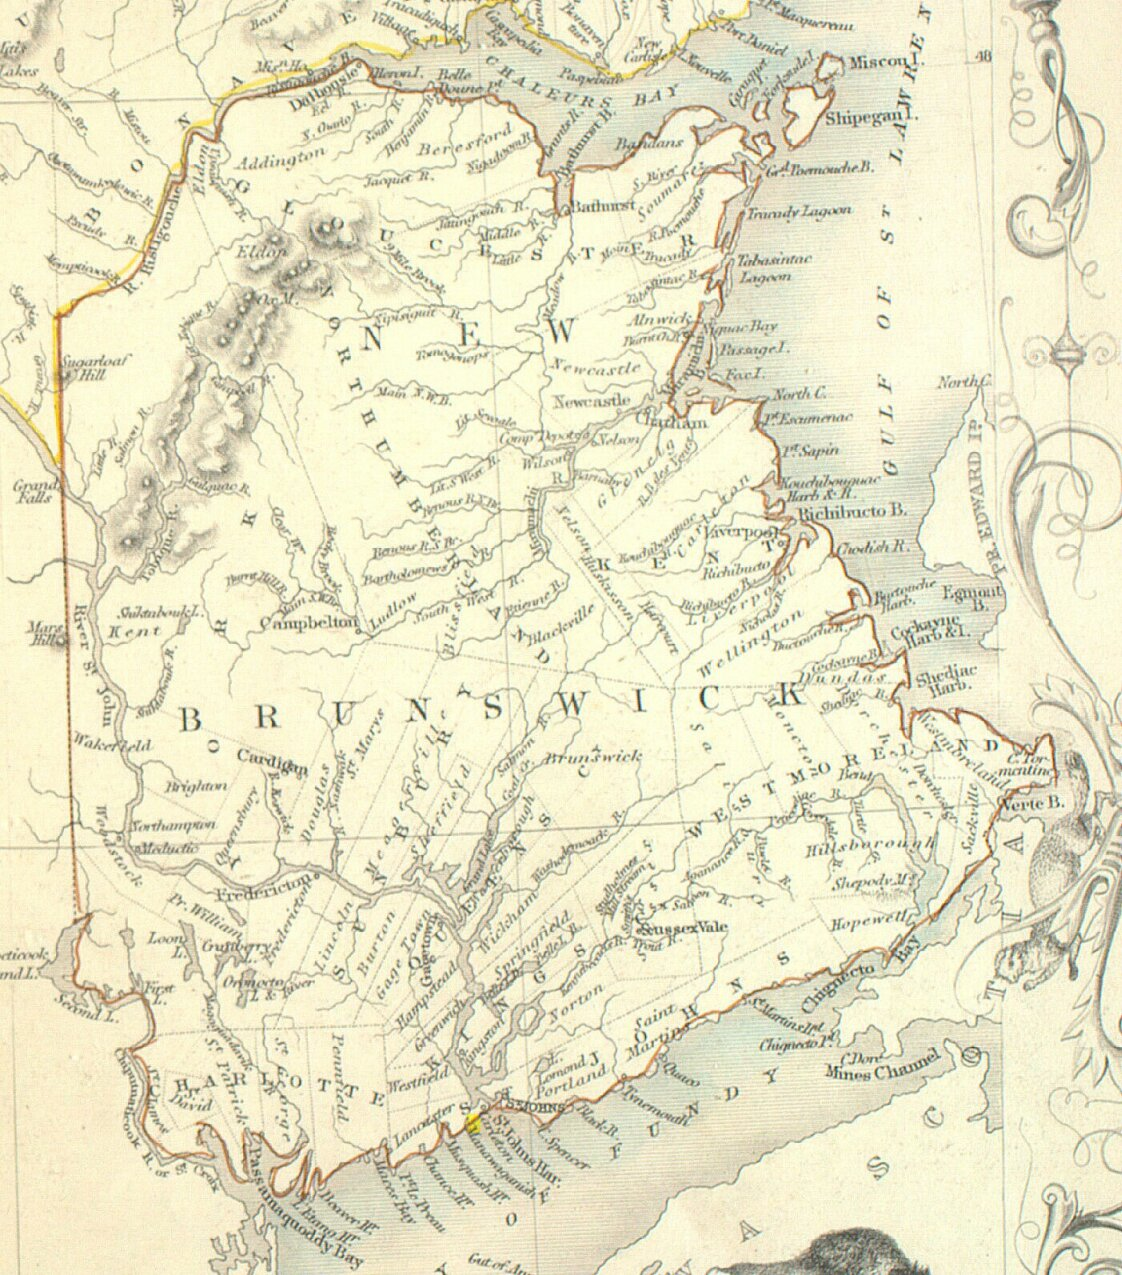 Maps Of Cork Settlement Cork Or Teetotal Settlement New Brunswick - Map of new brunswick